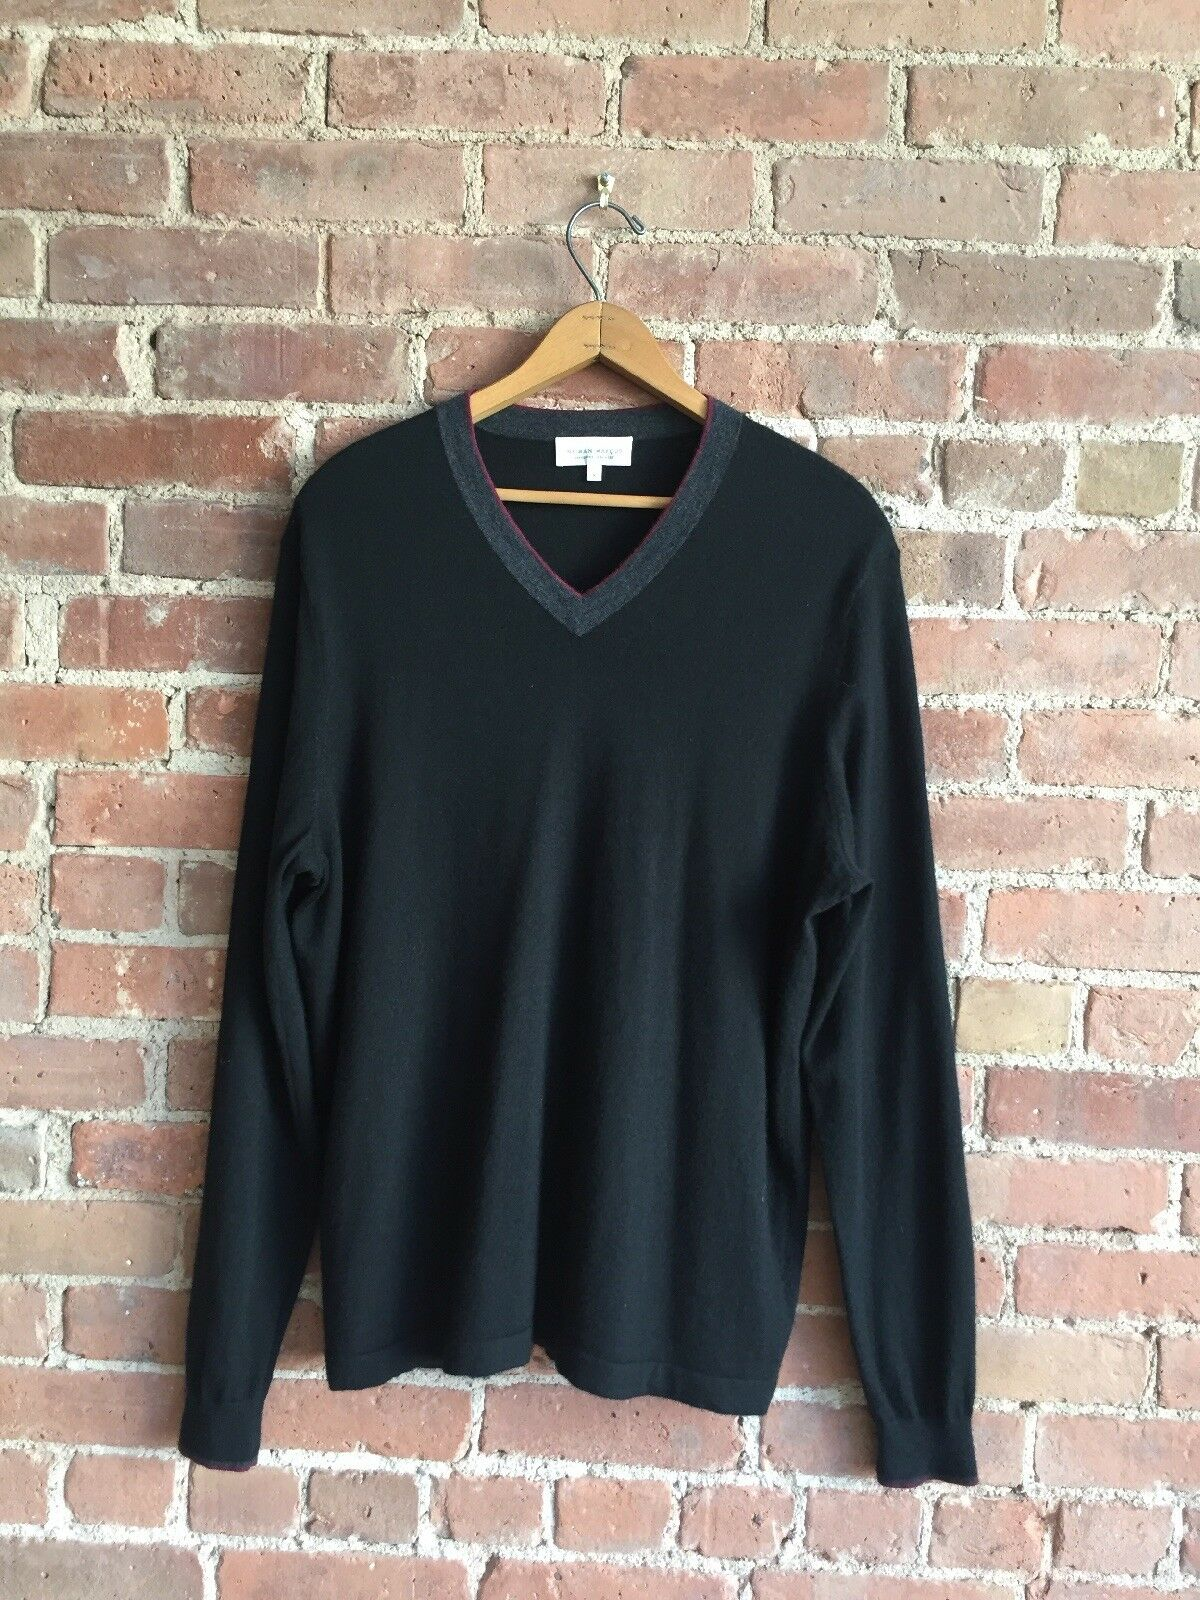 Neiman Marcus Mens 100% Superfine Cashmere Sweater, Size Large.